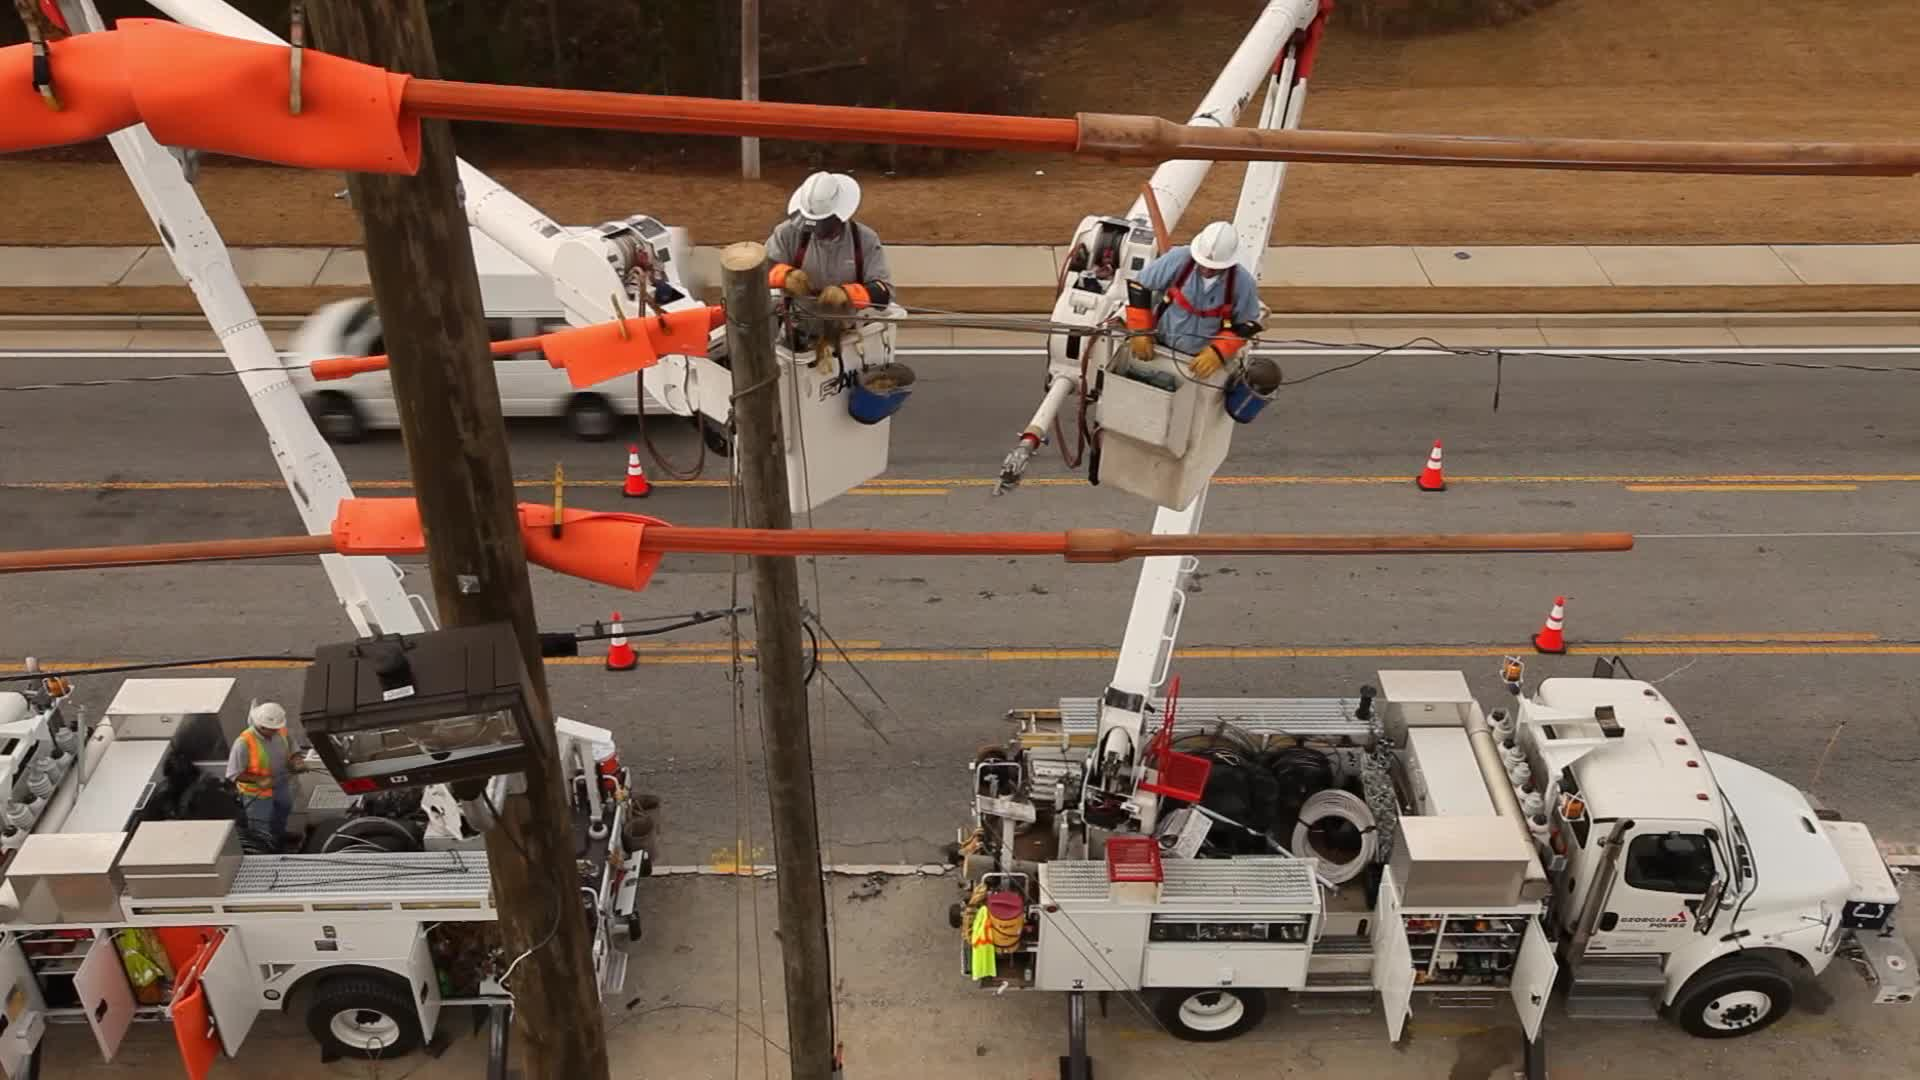 Georgia power linemen work in challenging conditions across the state